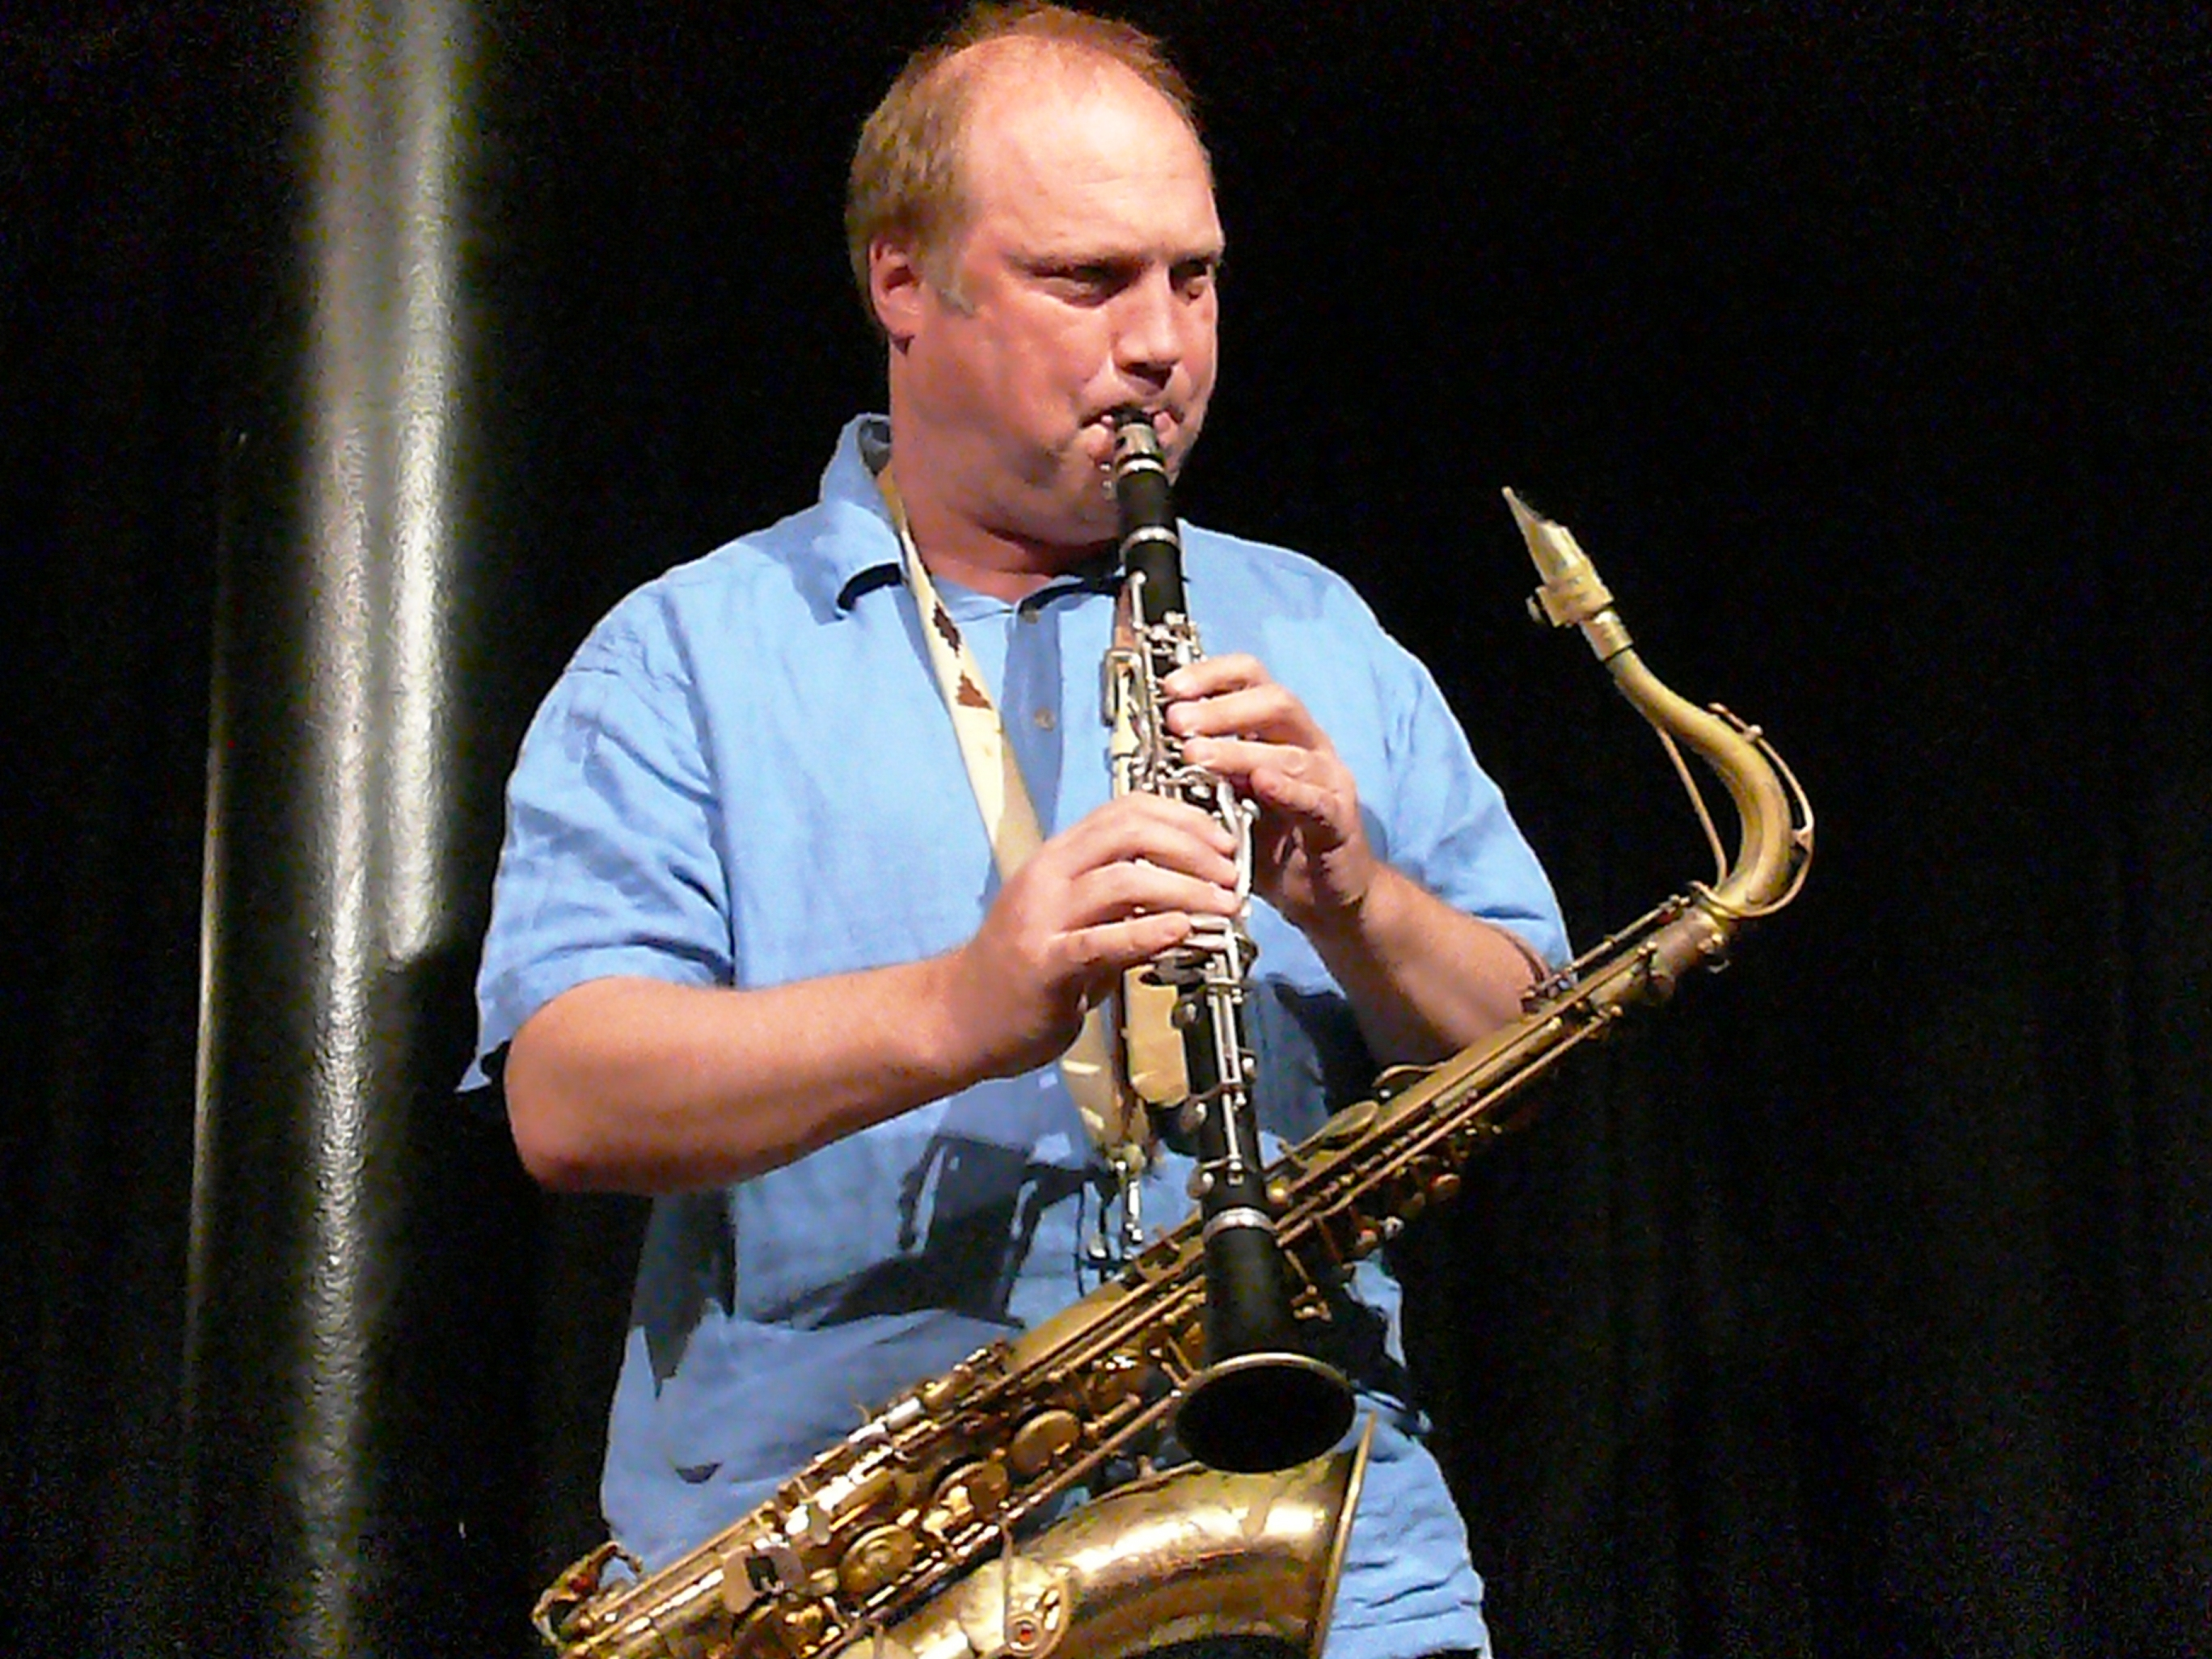 Tobias delius at the vortex, london in september 2013